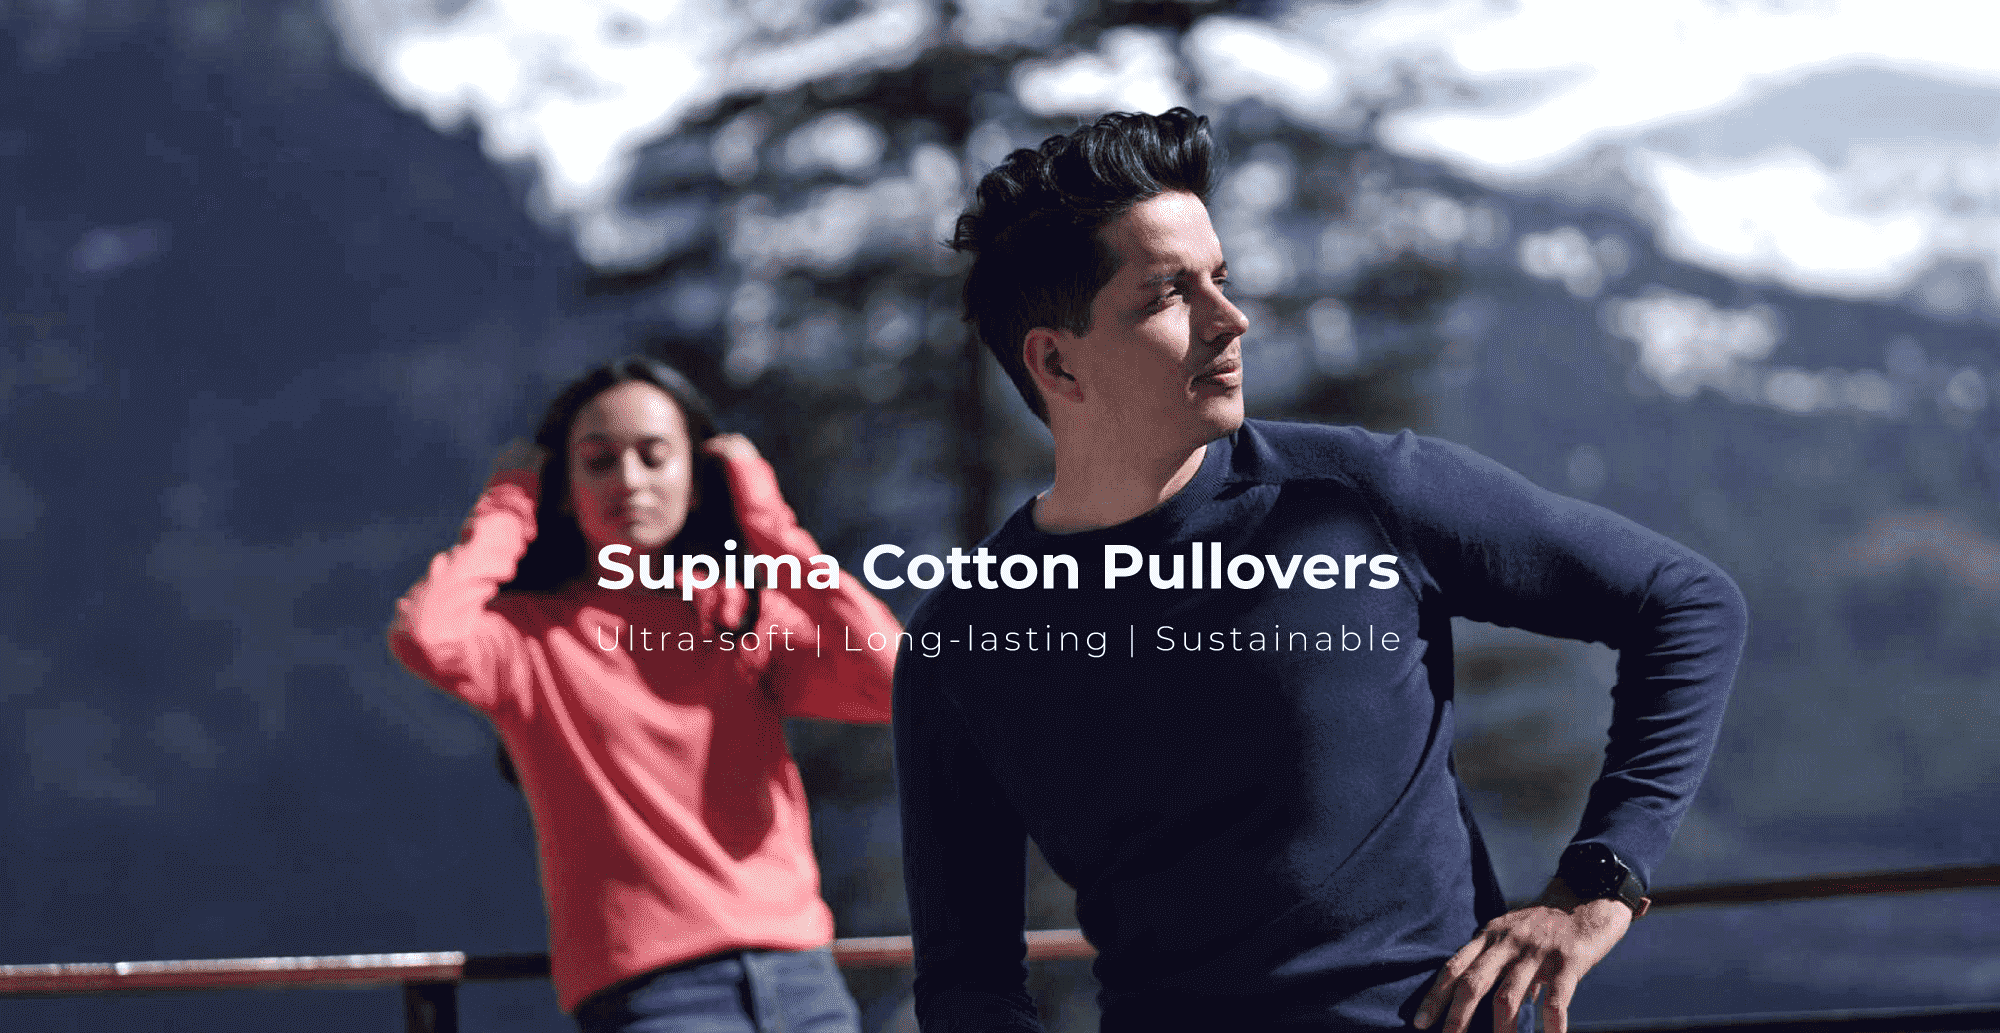 Supima Pullovers